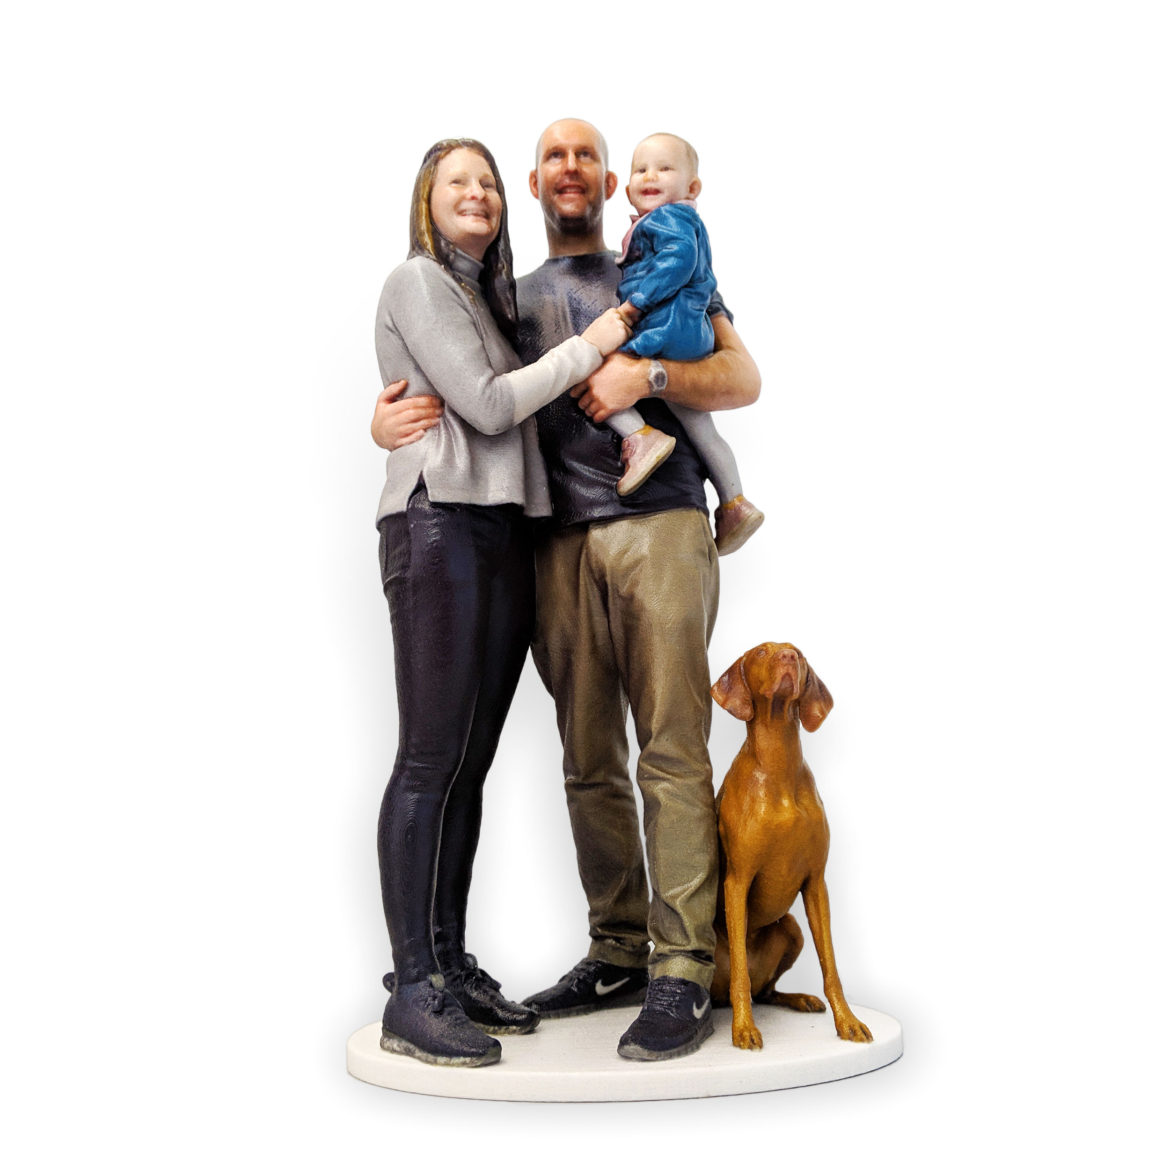 my3Dtwin, 3D Printed Figurine of family with kid and a dog